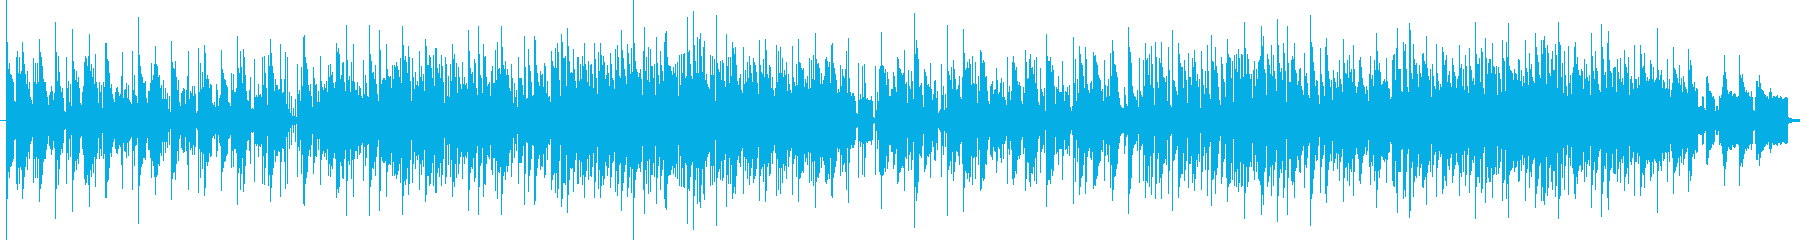 Fashionable and chic melody's reproduced waveform